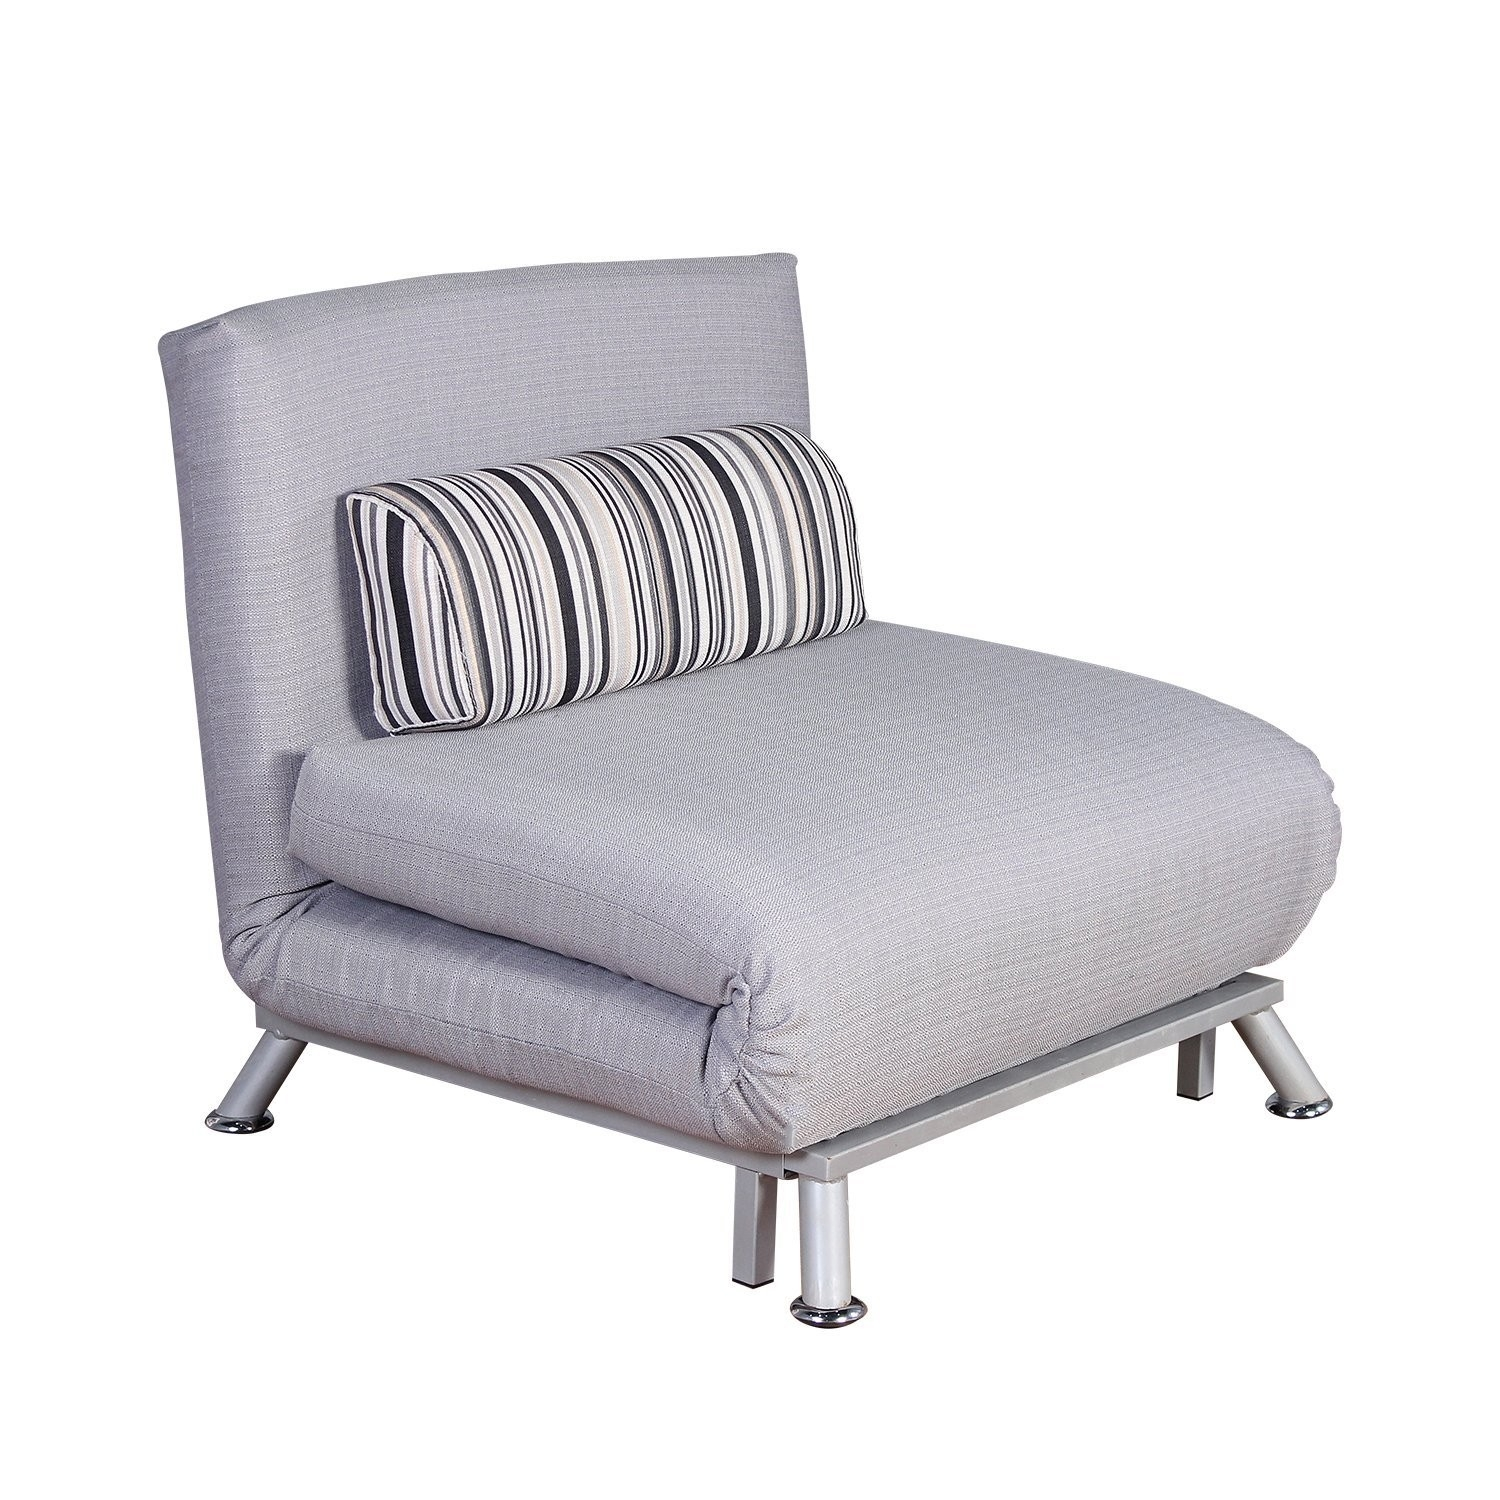 Single Fold Out Chair Bed Fold Out Futon Sofa Bed Single Sofa Regarding Single Sofa Bed Chairs (Image 7 of 15)